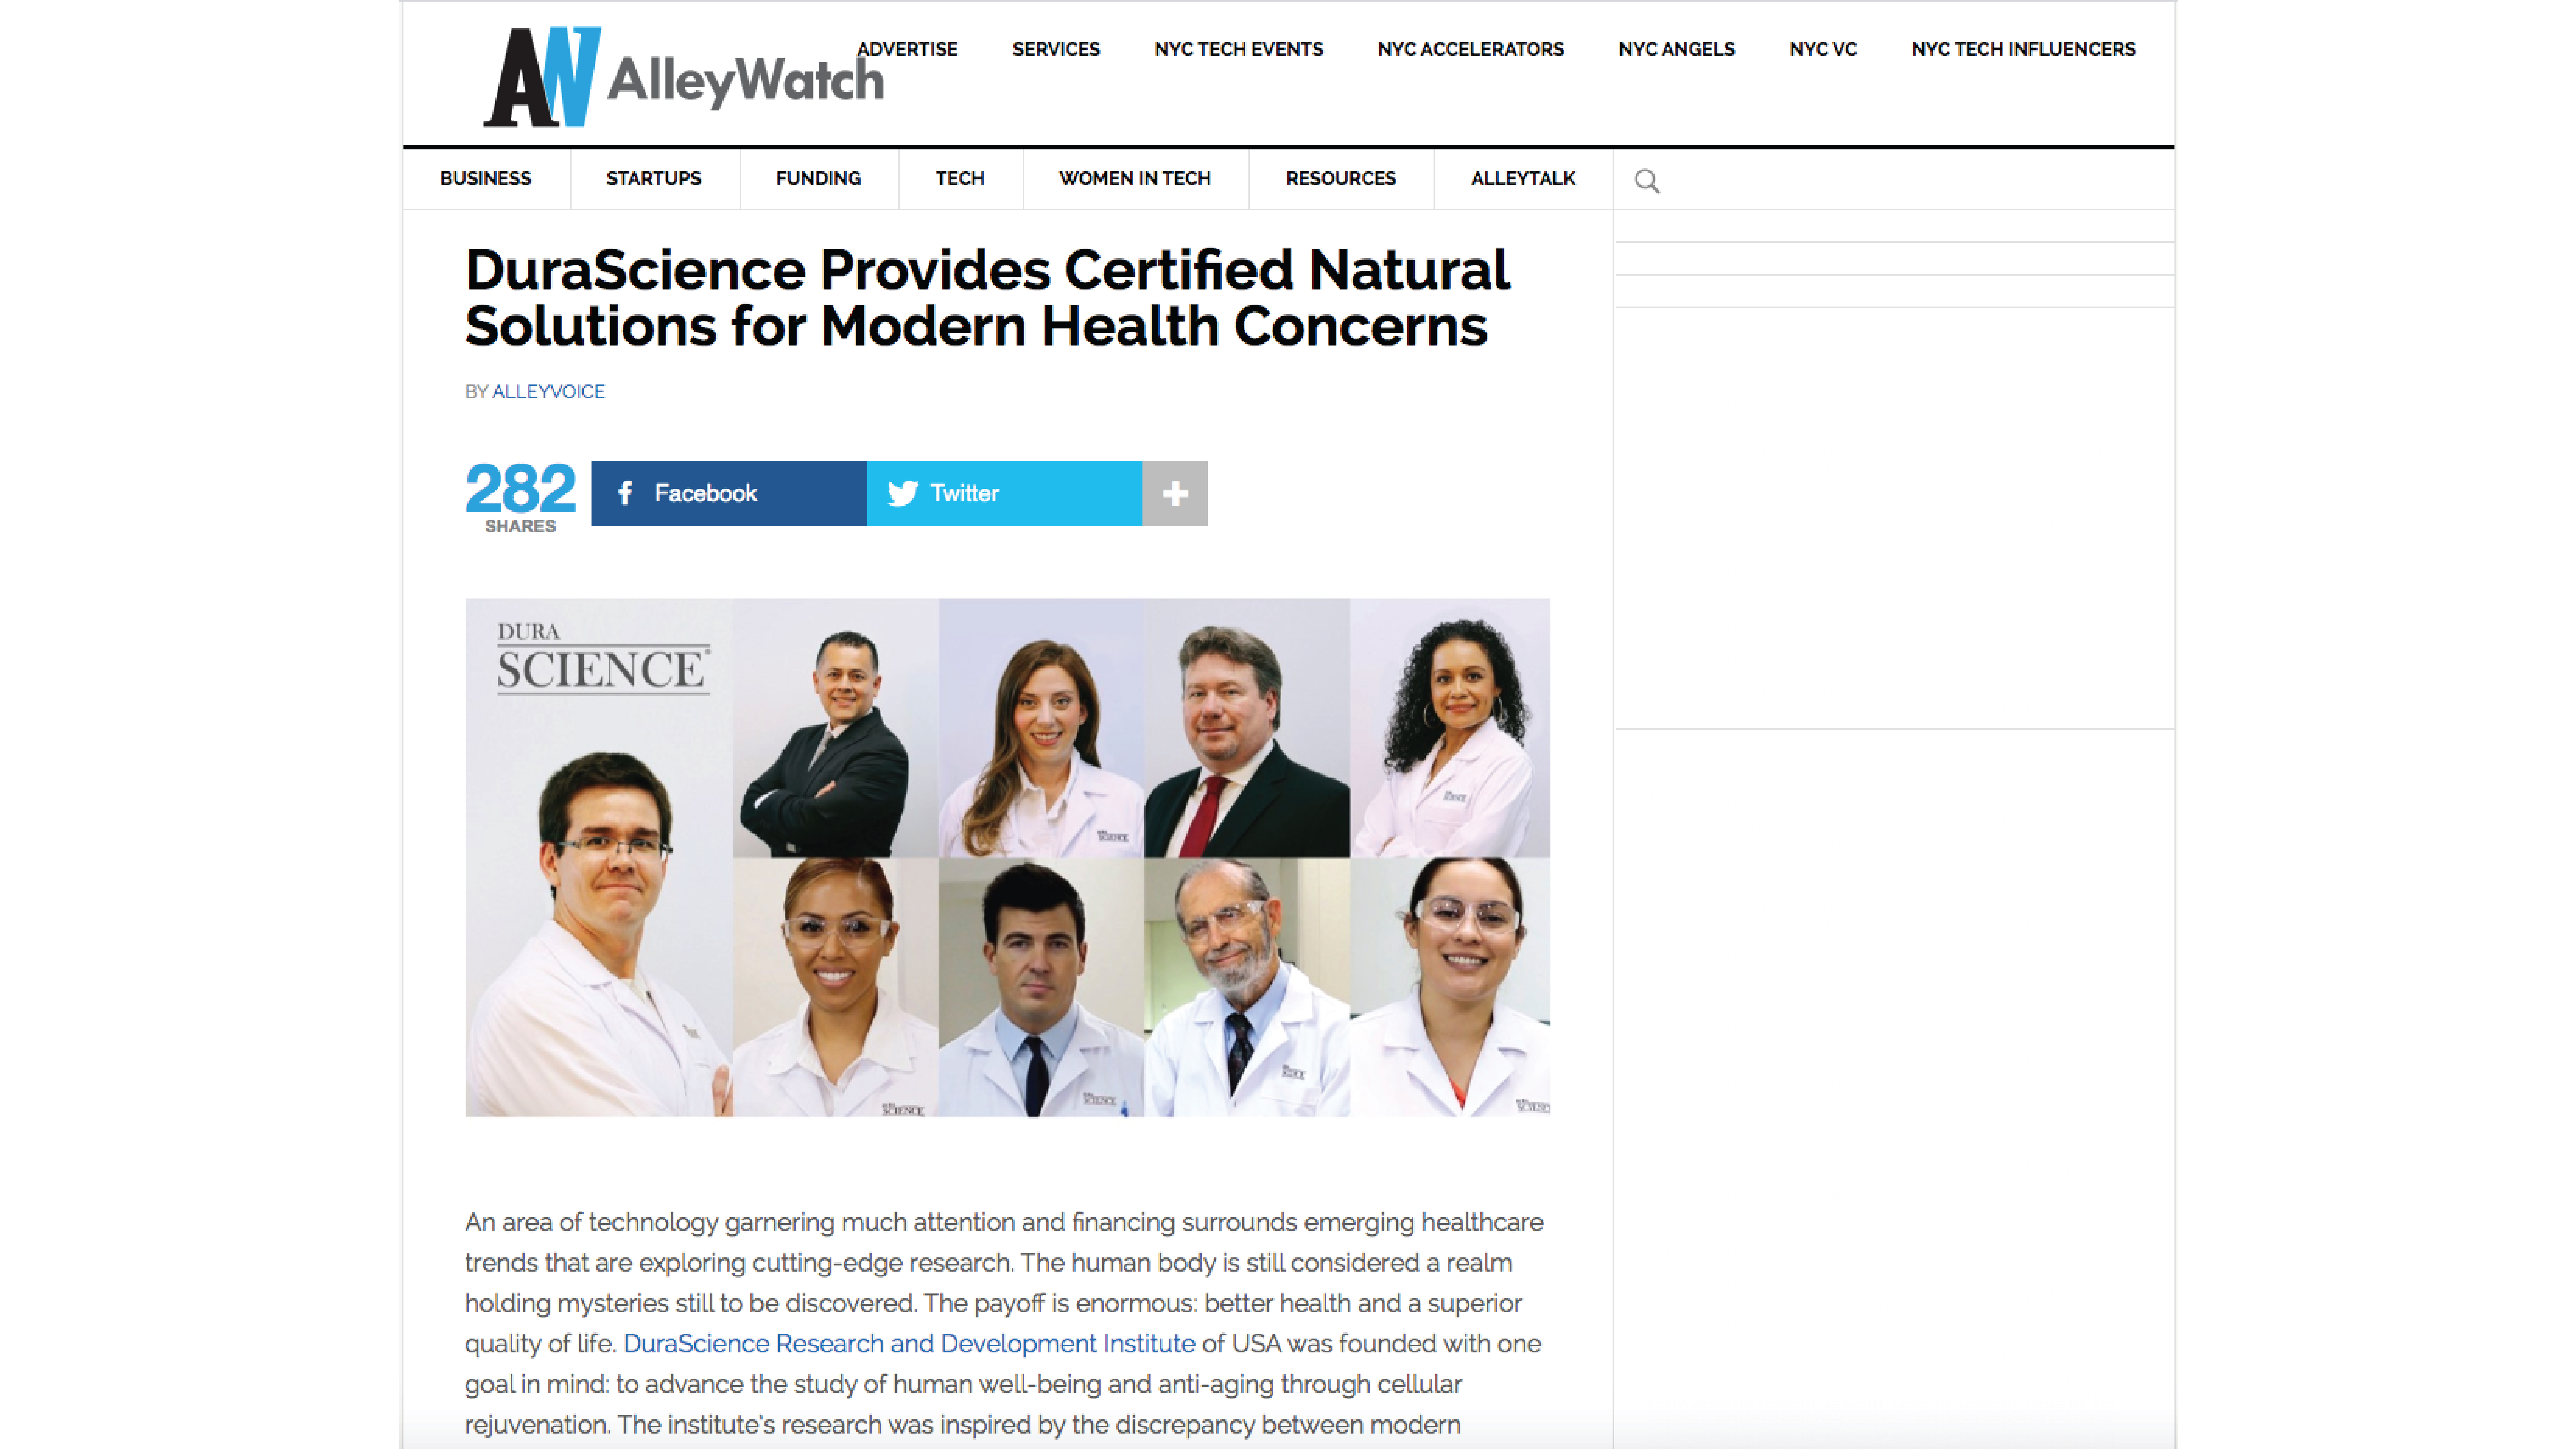 DuraScience Provides Certified Natural Solutions For Modern Health Concerns